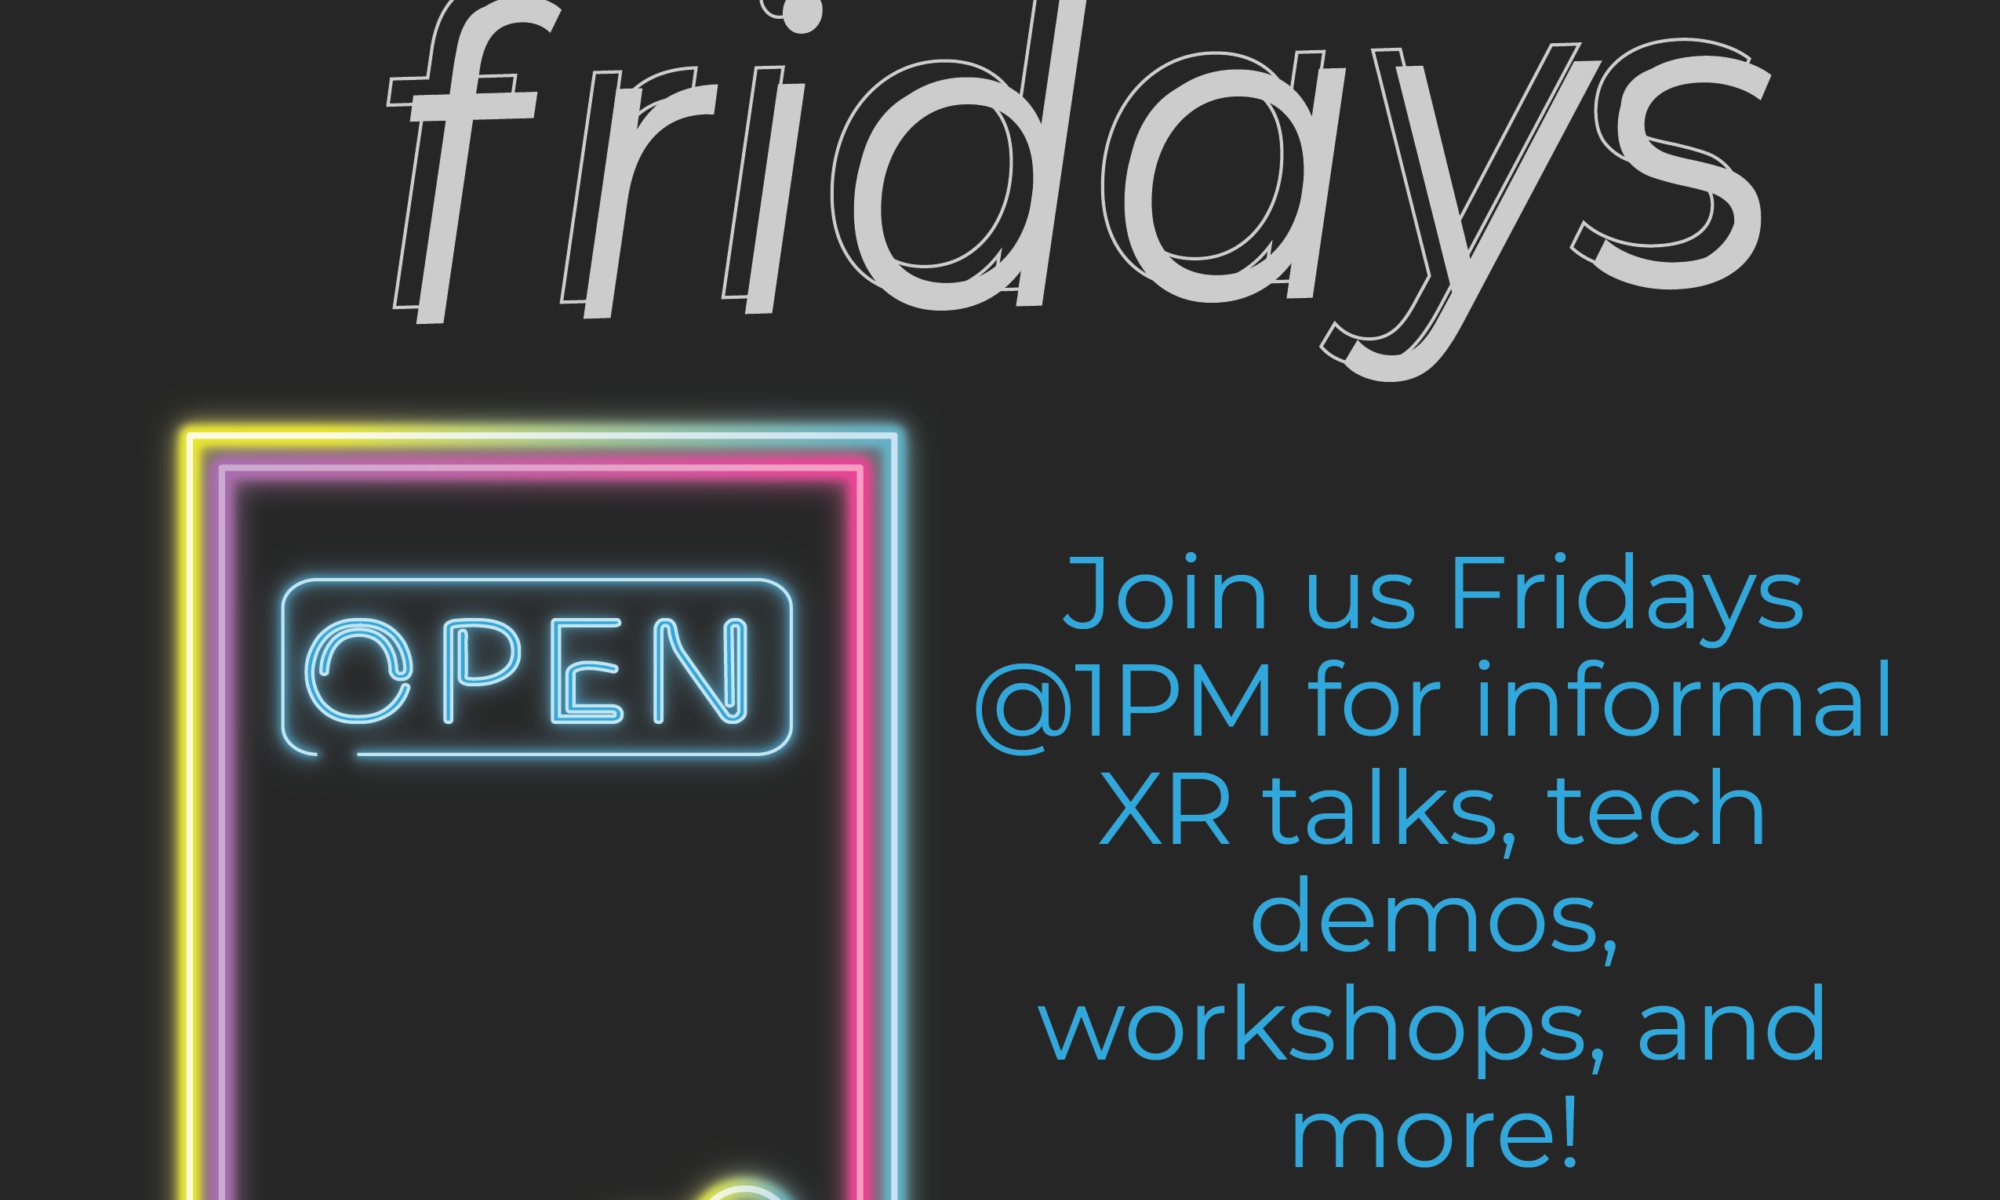 """promotional image for Drop-in Fridays. Shows a door with the word open on it, the studio x logo, and the text, """"Join us Fridays @1PM for informal XR talks, tech demos, workshops, and more!"""""""